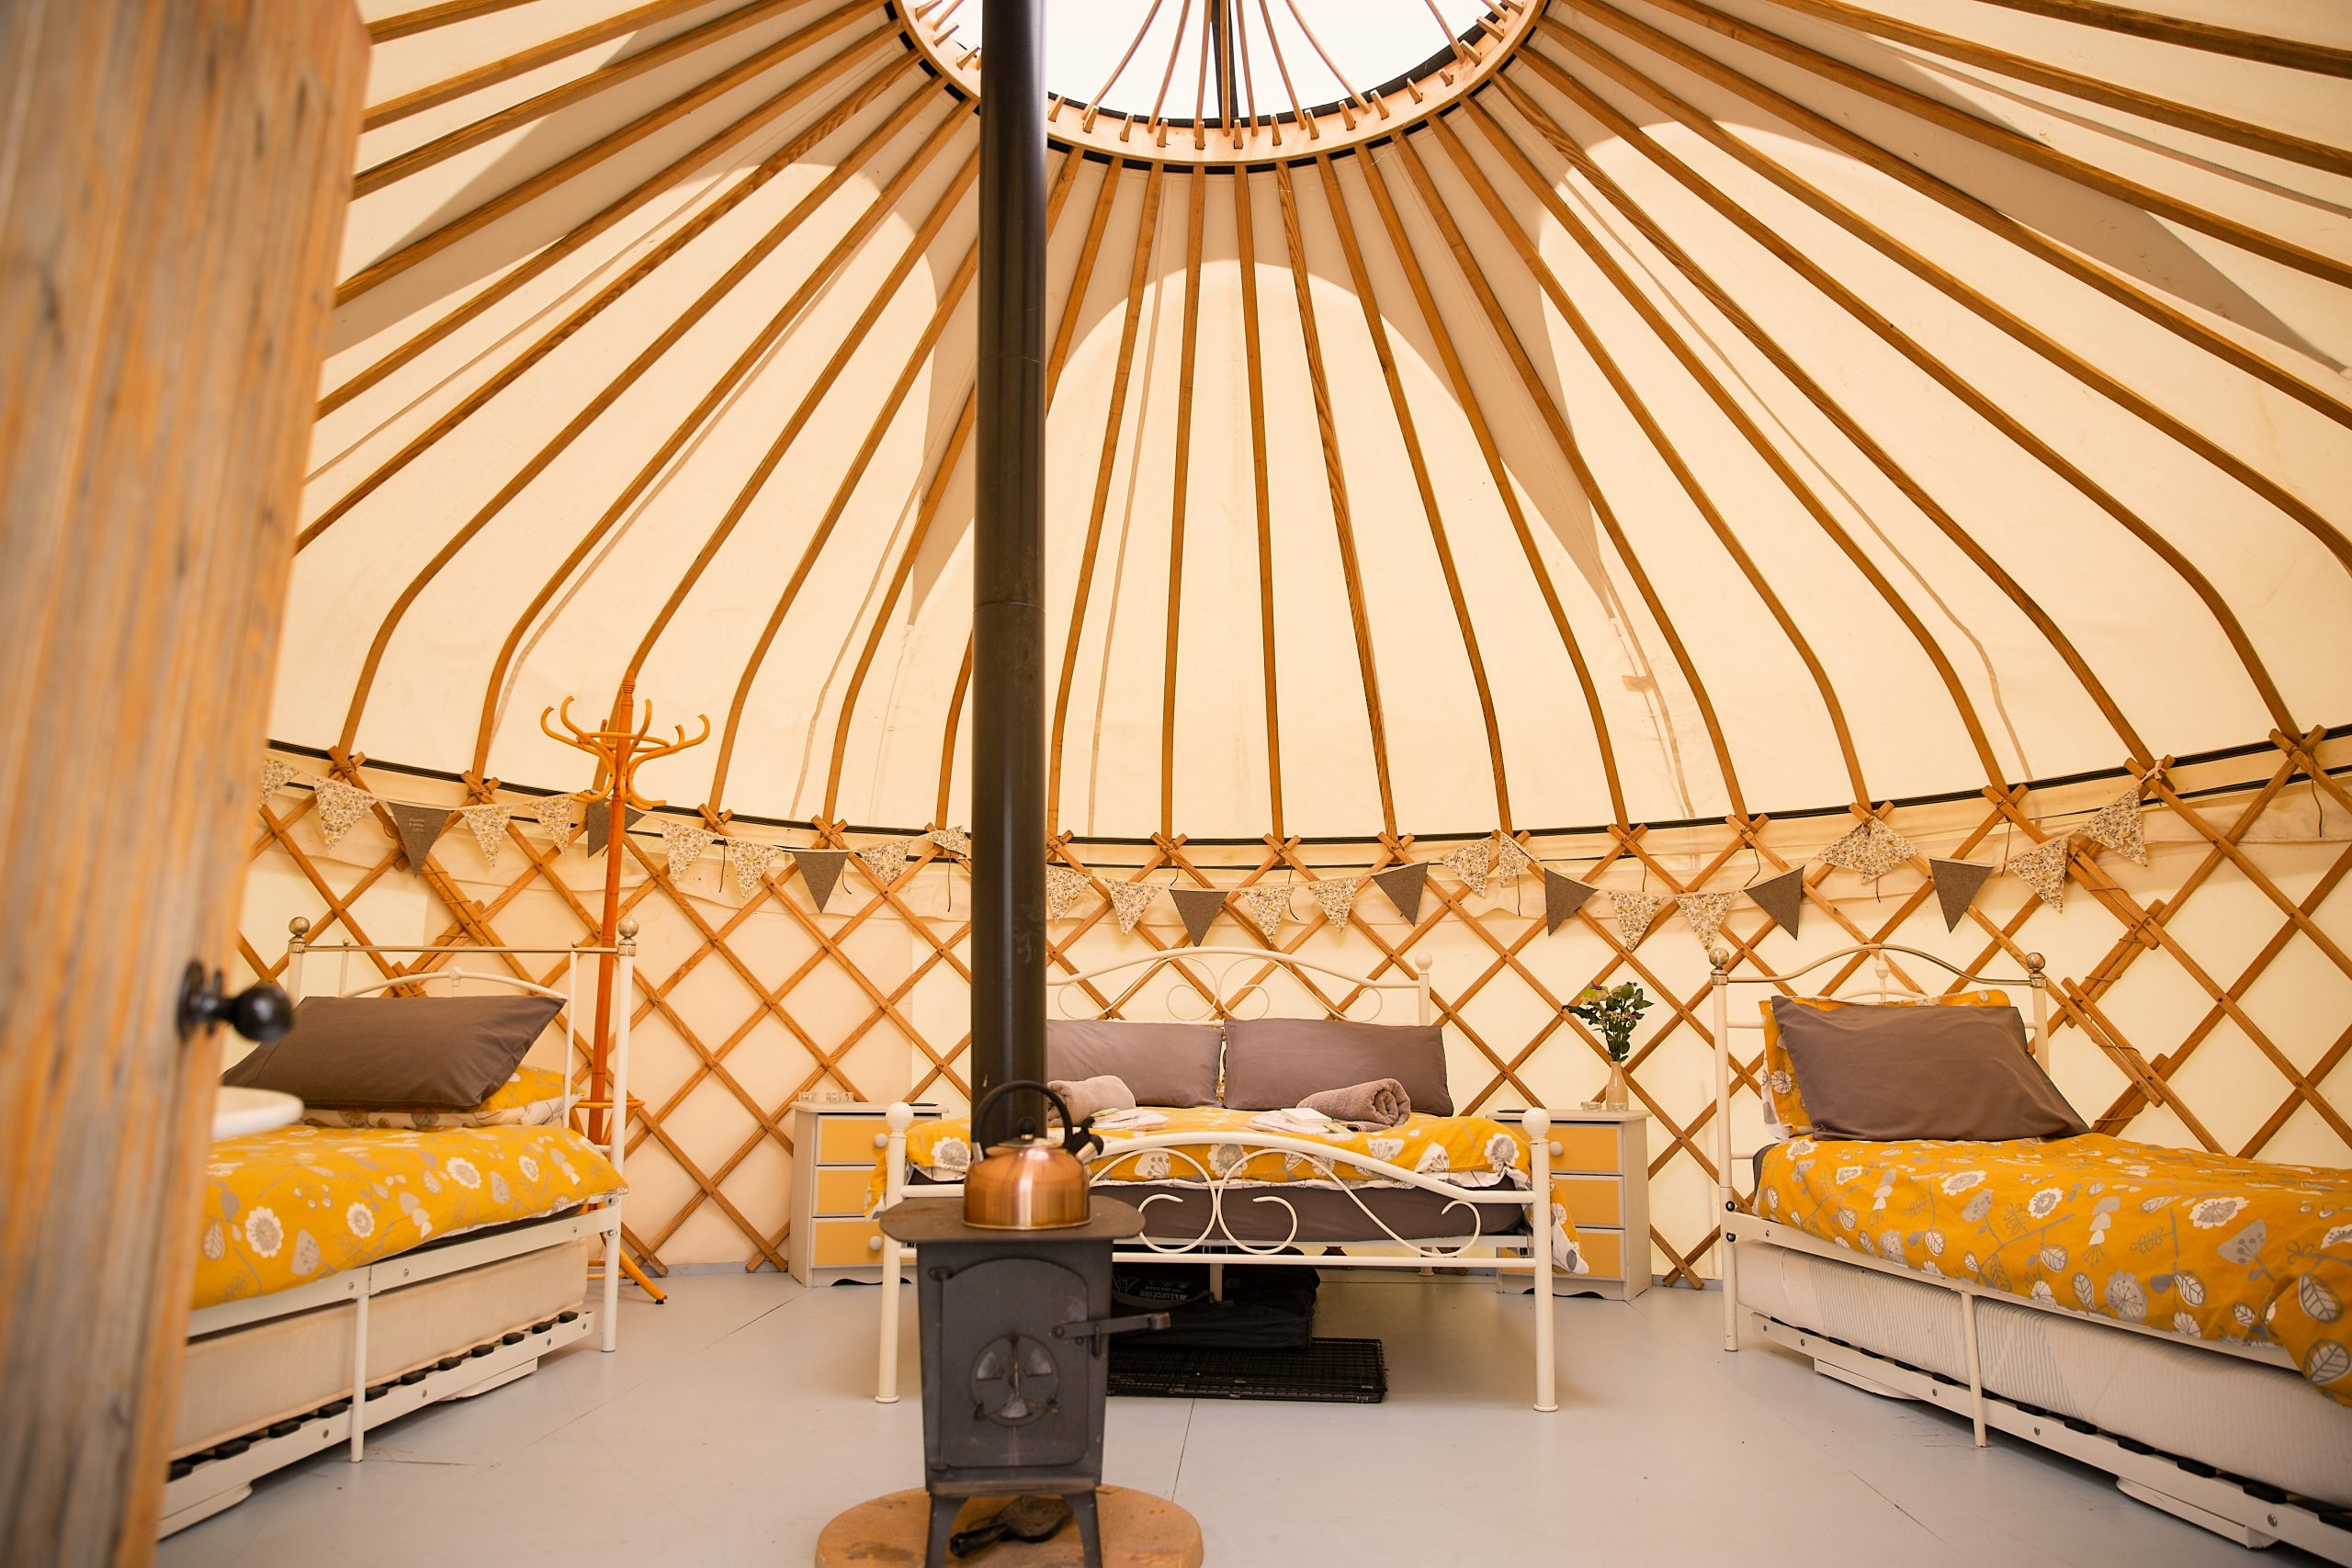 The bright and cosy inside of one of the yurts at Country Bumpkin Yurts